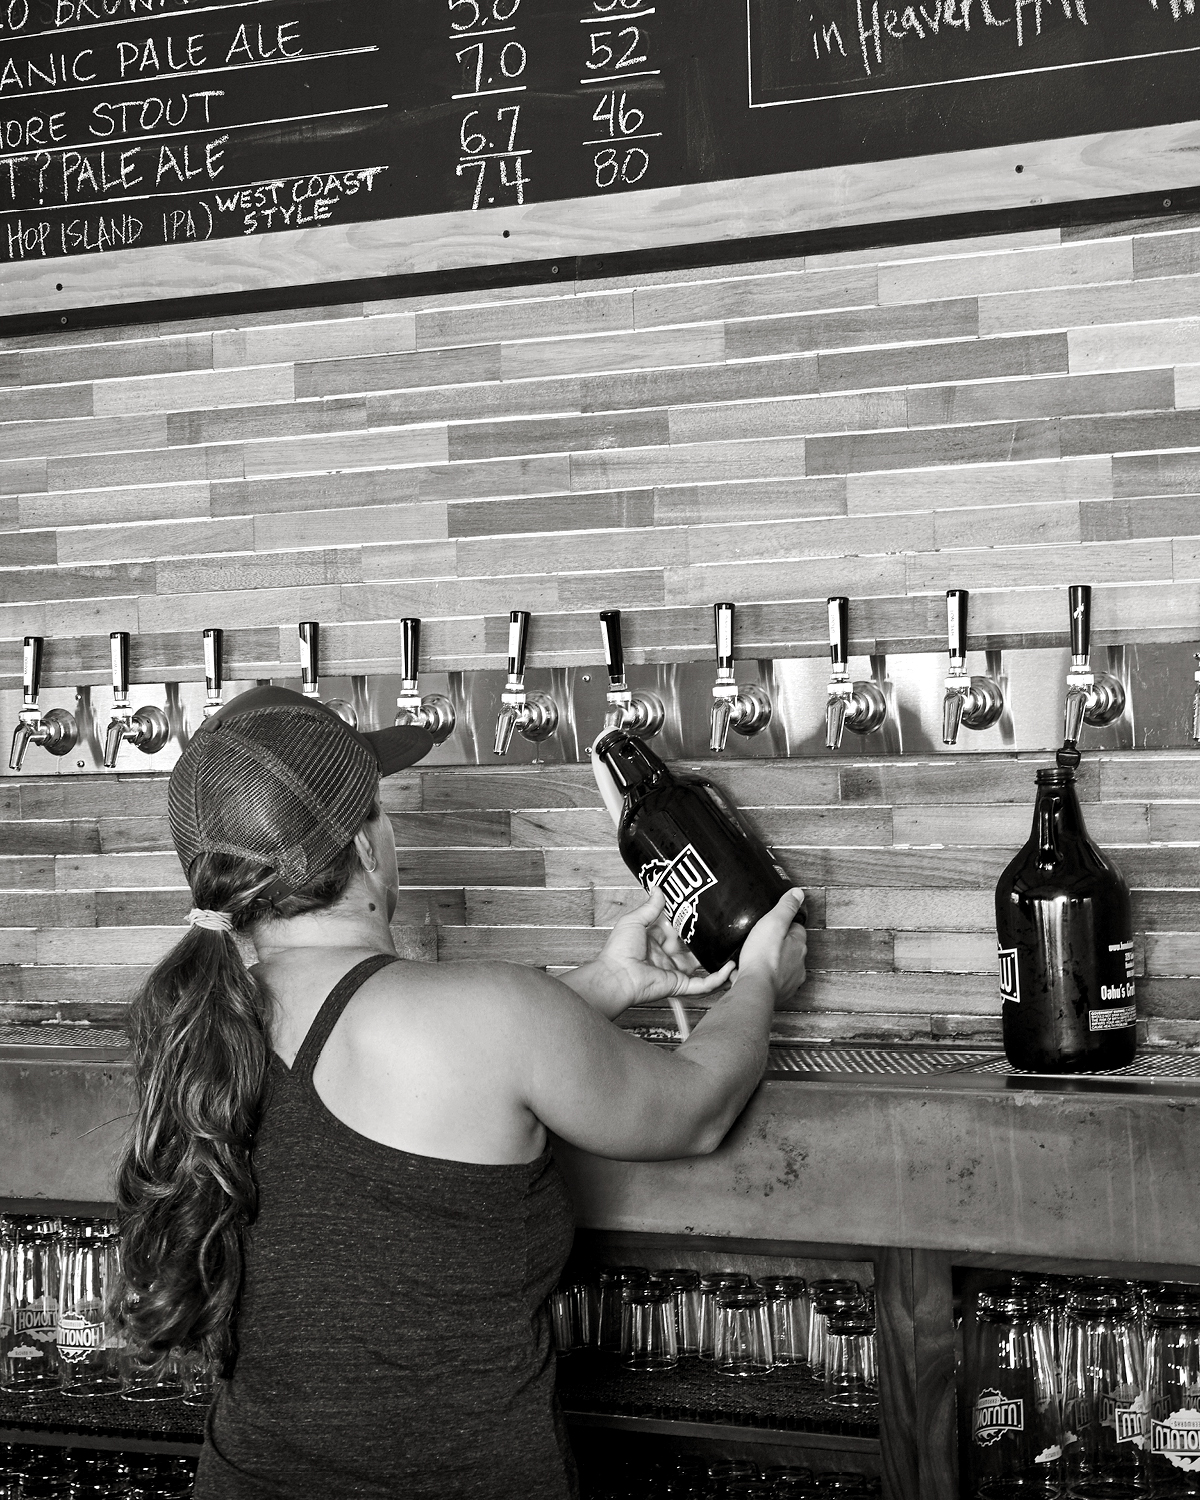 POURING A SCREW-TOP-GROWLER AT HONOLULU BEERWORKS